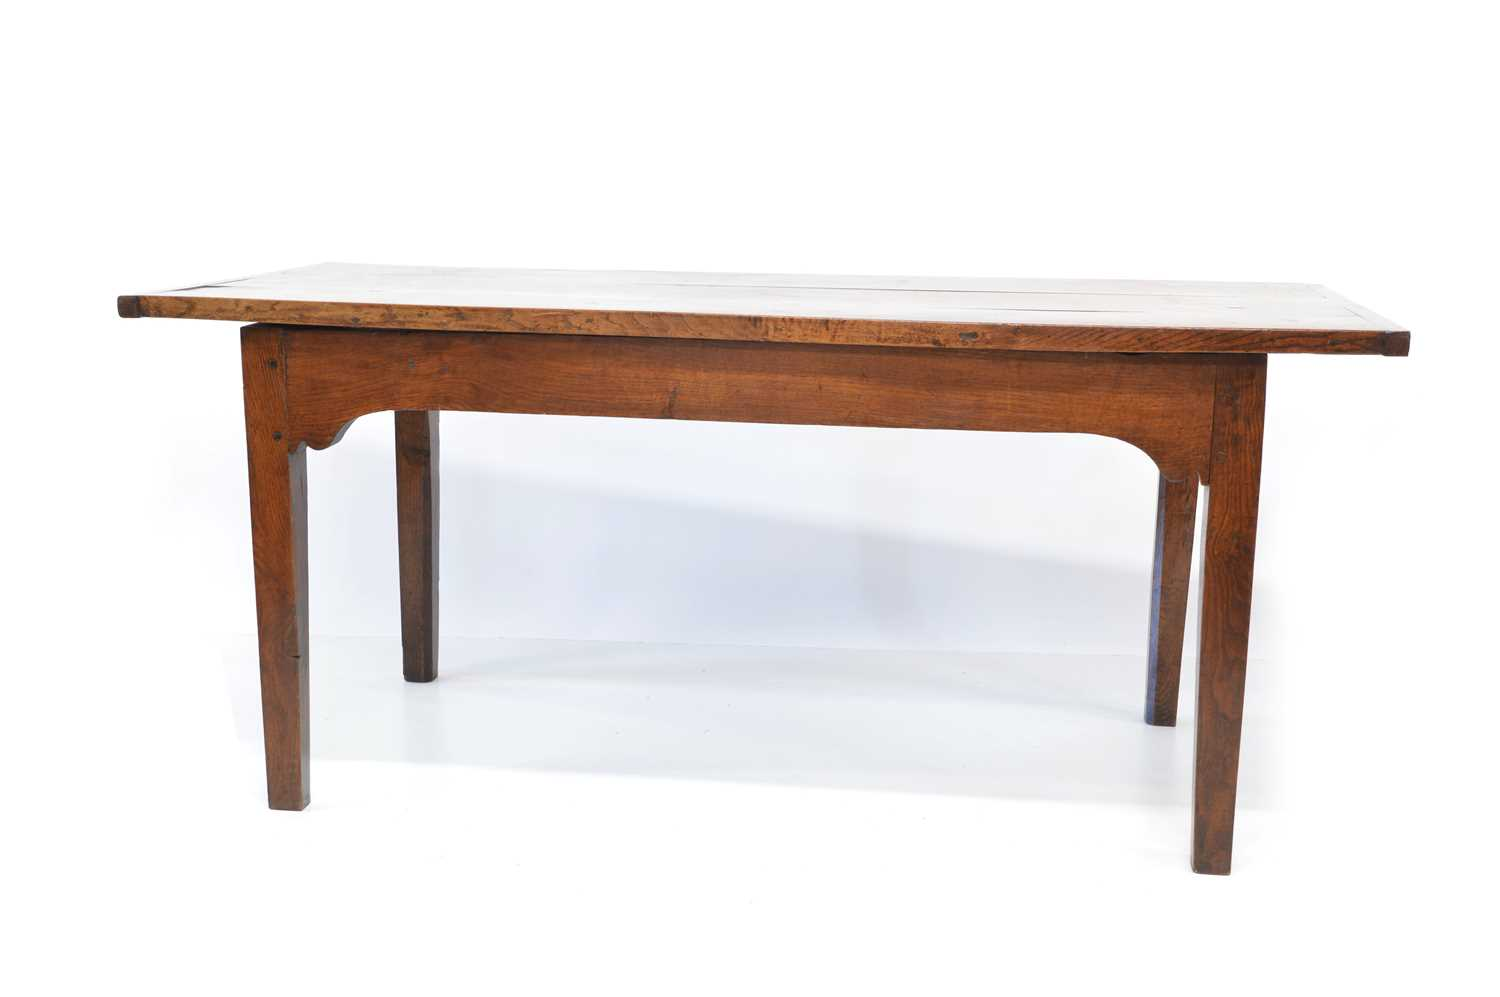 414 - 18th Century oak and elm dining table